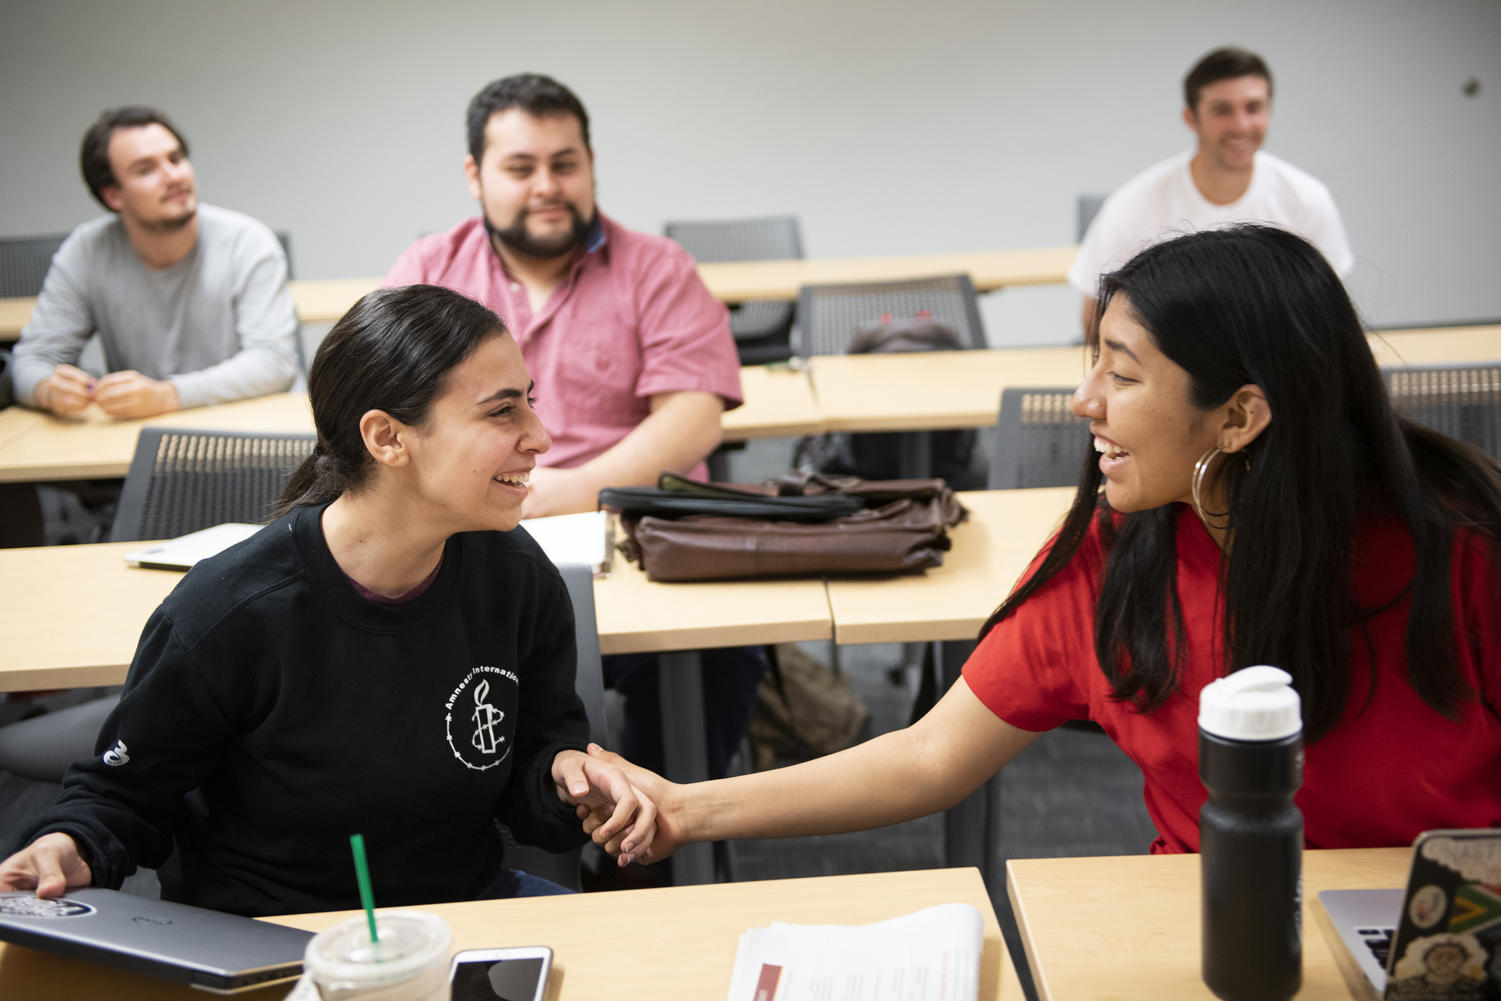 Rana Thabata finds out she was one of 62 winners of the prestigious Truman Scholarship in her business class. Tetlow, a former Truman fellow herself, came to her class with balloons to announce Thabta's win. Photo credit: Kyle Encar